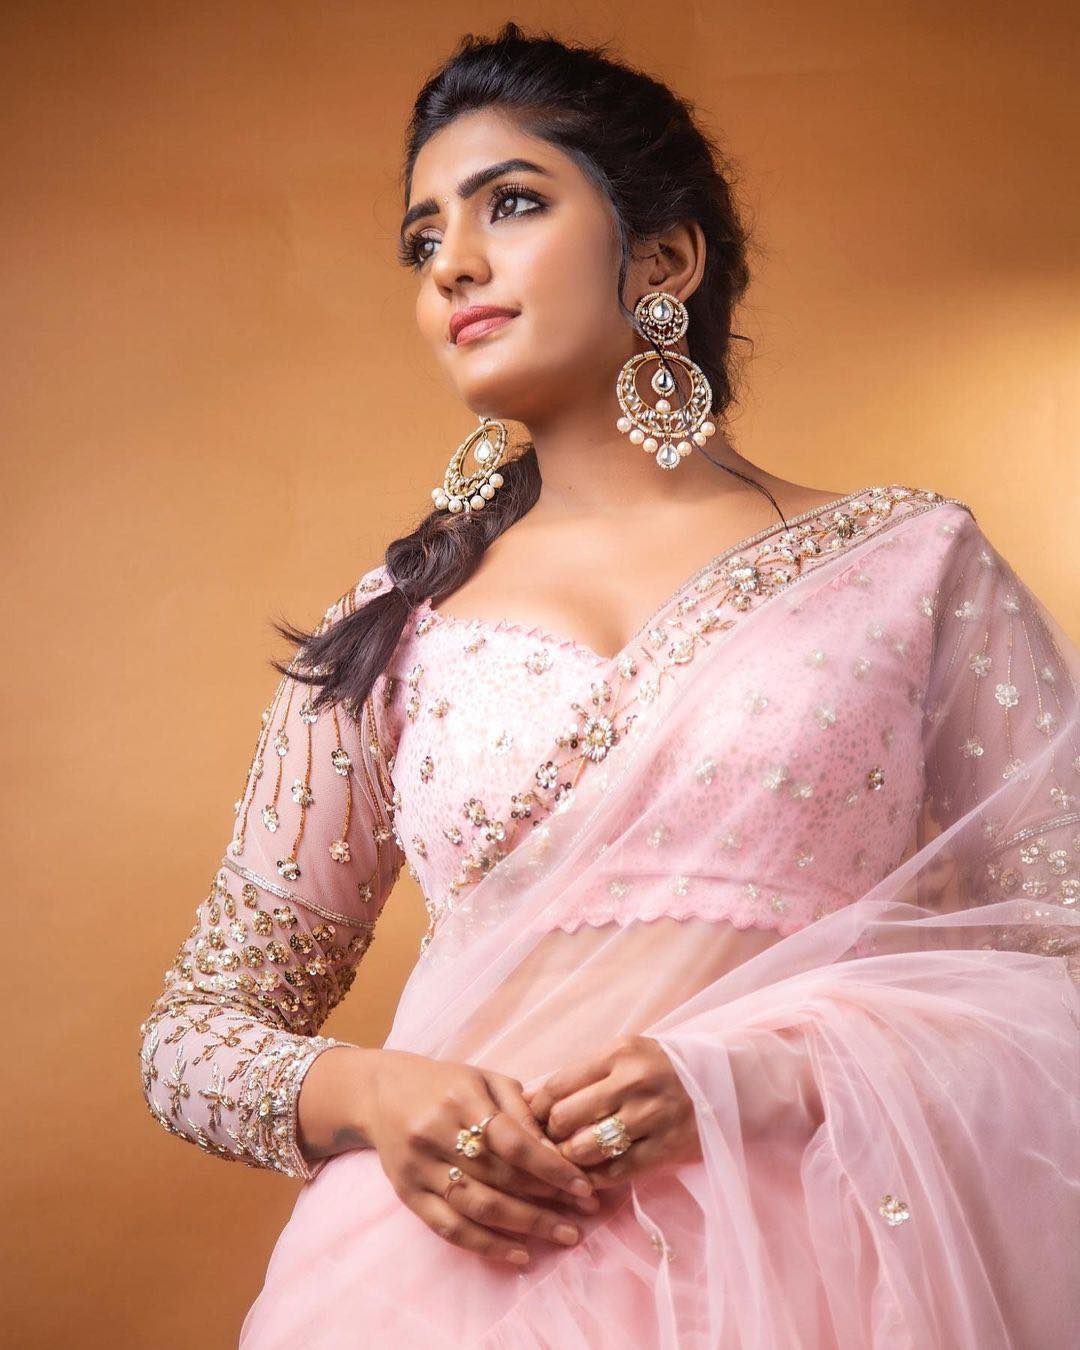 Stunning actress Eesha Rebba in blush pink color designer saree and blouse. She adorned with earrings. | saree with contrast blouse | plain saree with blouse | gujarati mirror work sarees online shopping | 2020-11-05